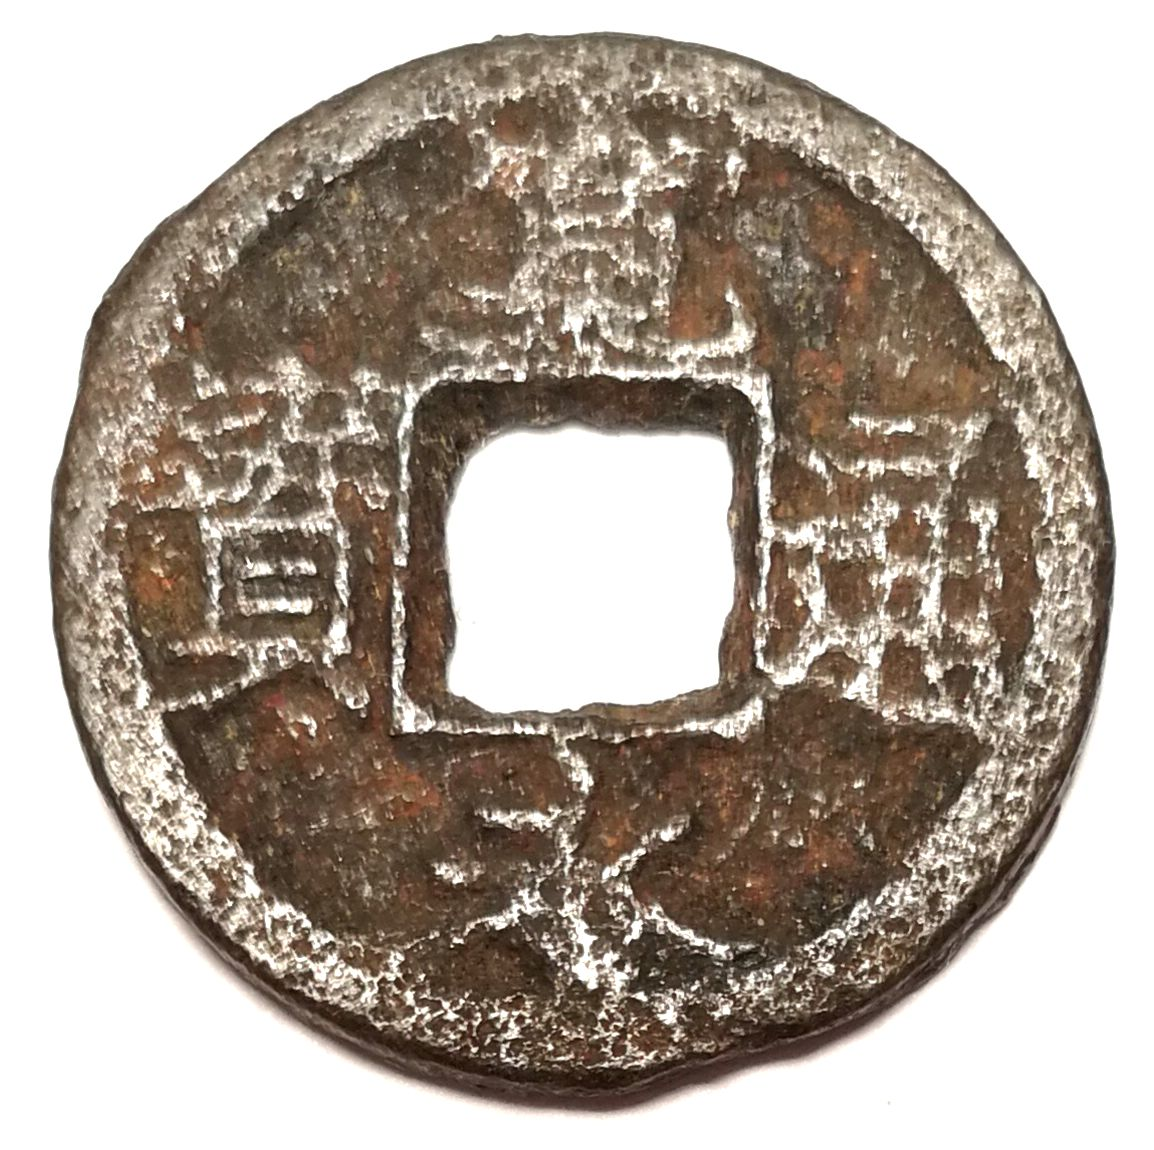 L7036, Japan Iron Kanei Tsu-ho Coin, around AD 1700's, IRON